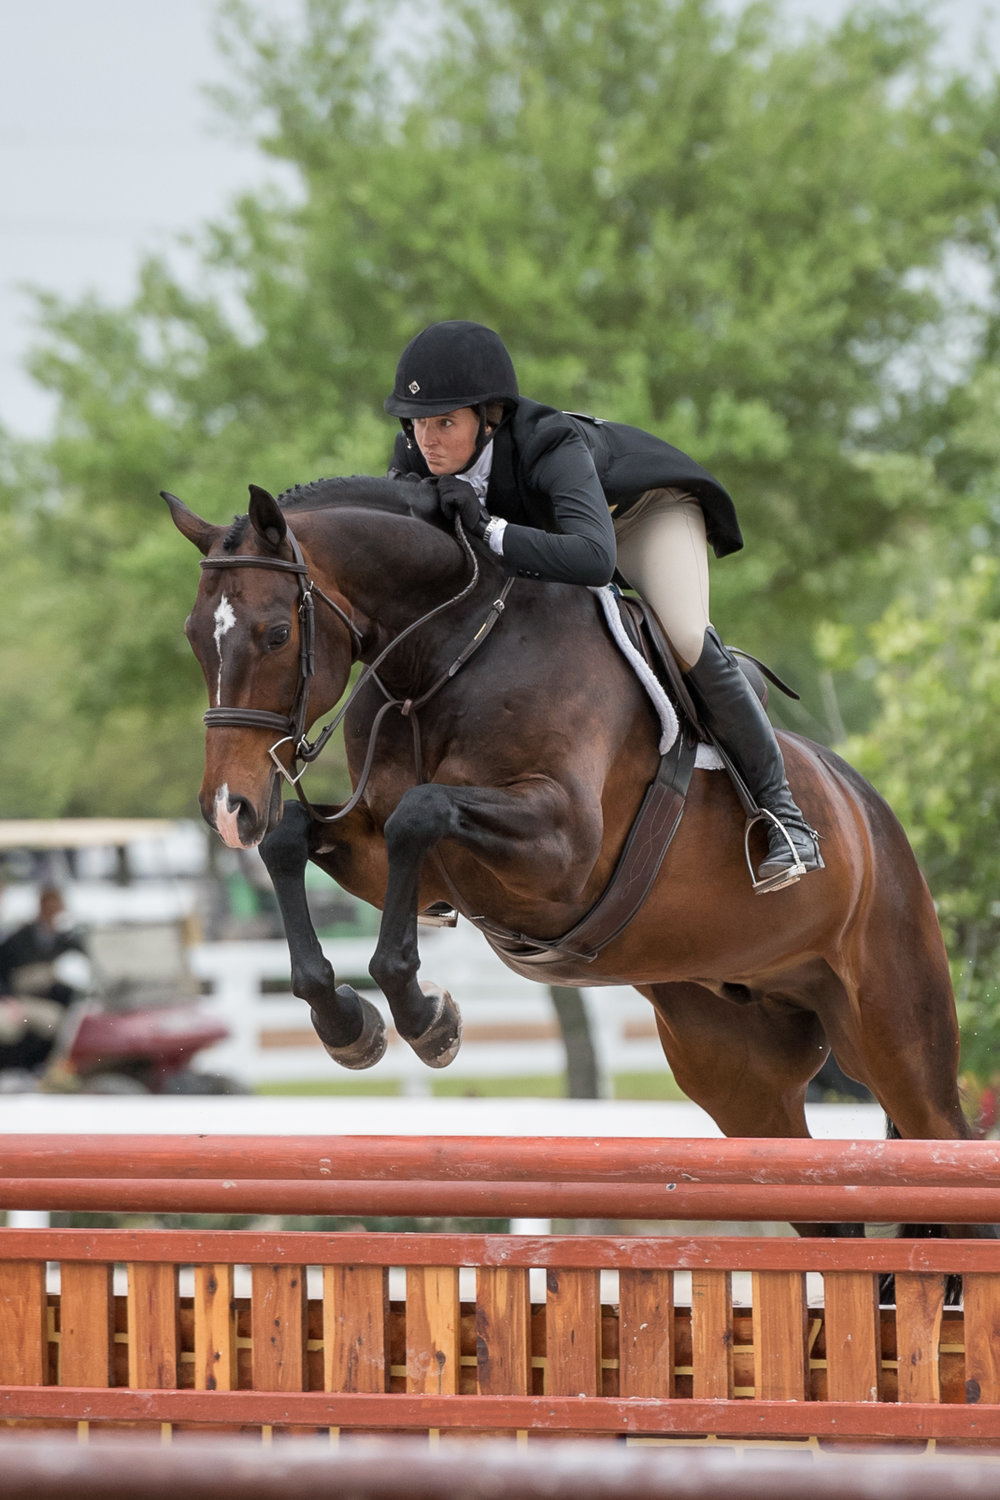 Kristy Herrera and Candid continued their success in the USHJA International Hunter Derby classes, placing second at Pin Oak I.